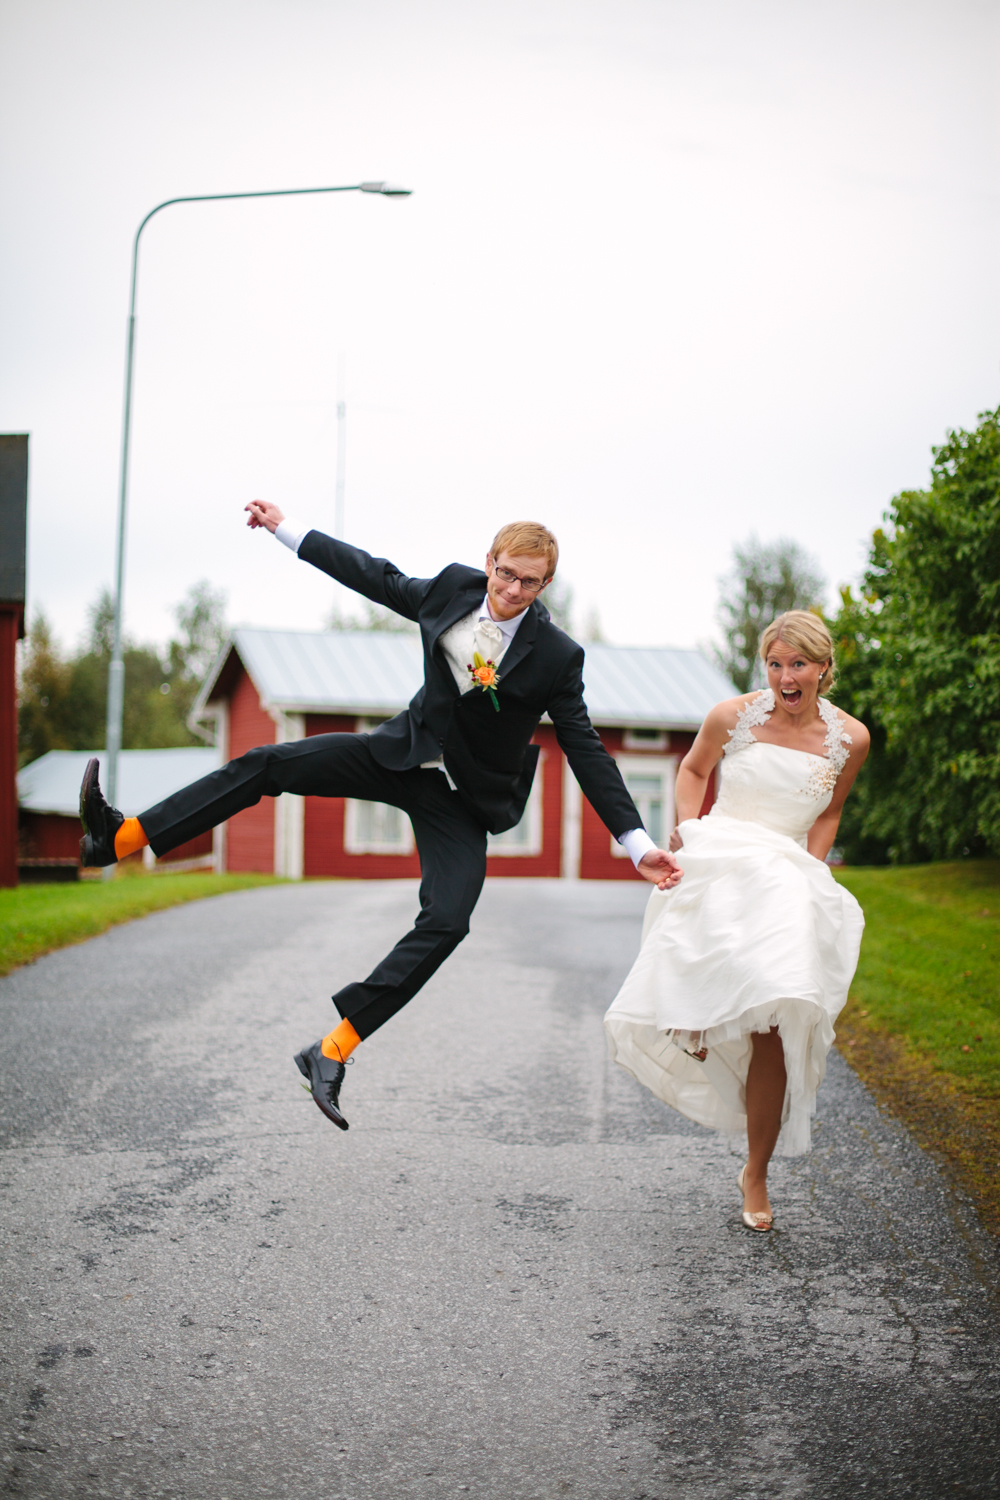 wedding_stina_johan-63.jpg